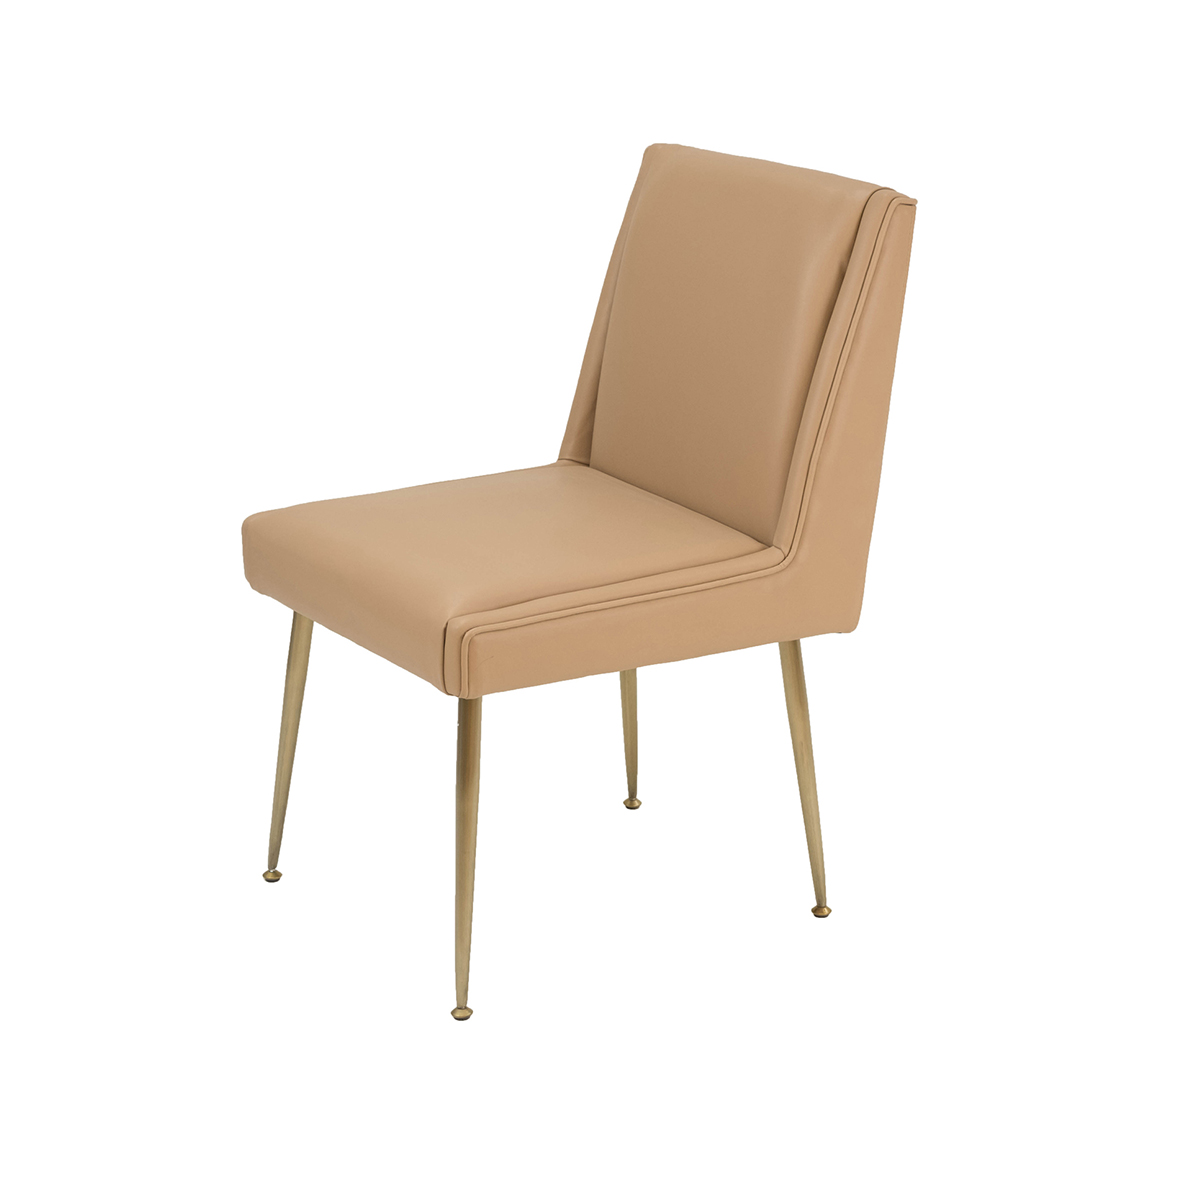 Art Dining Chair – Beige Läder